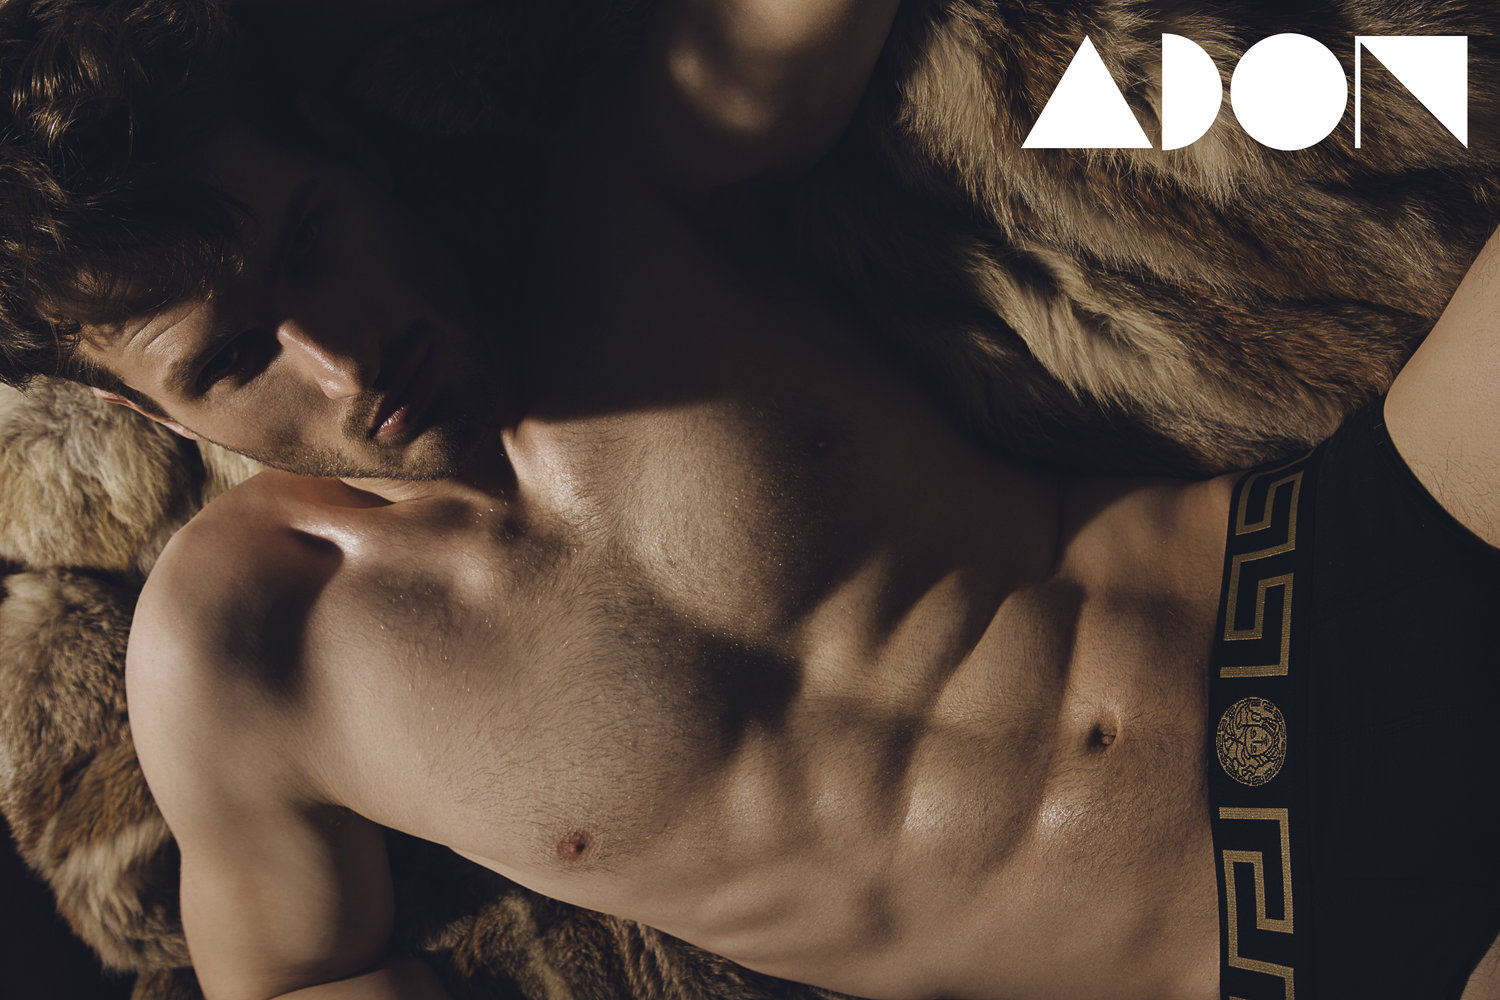 Adon Exclusive: Model David Koch By Kamil Rutkowski